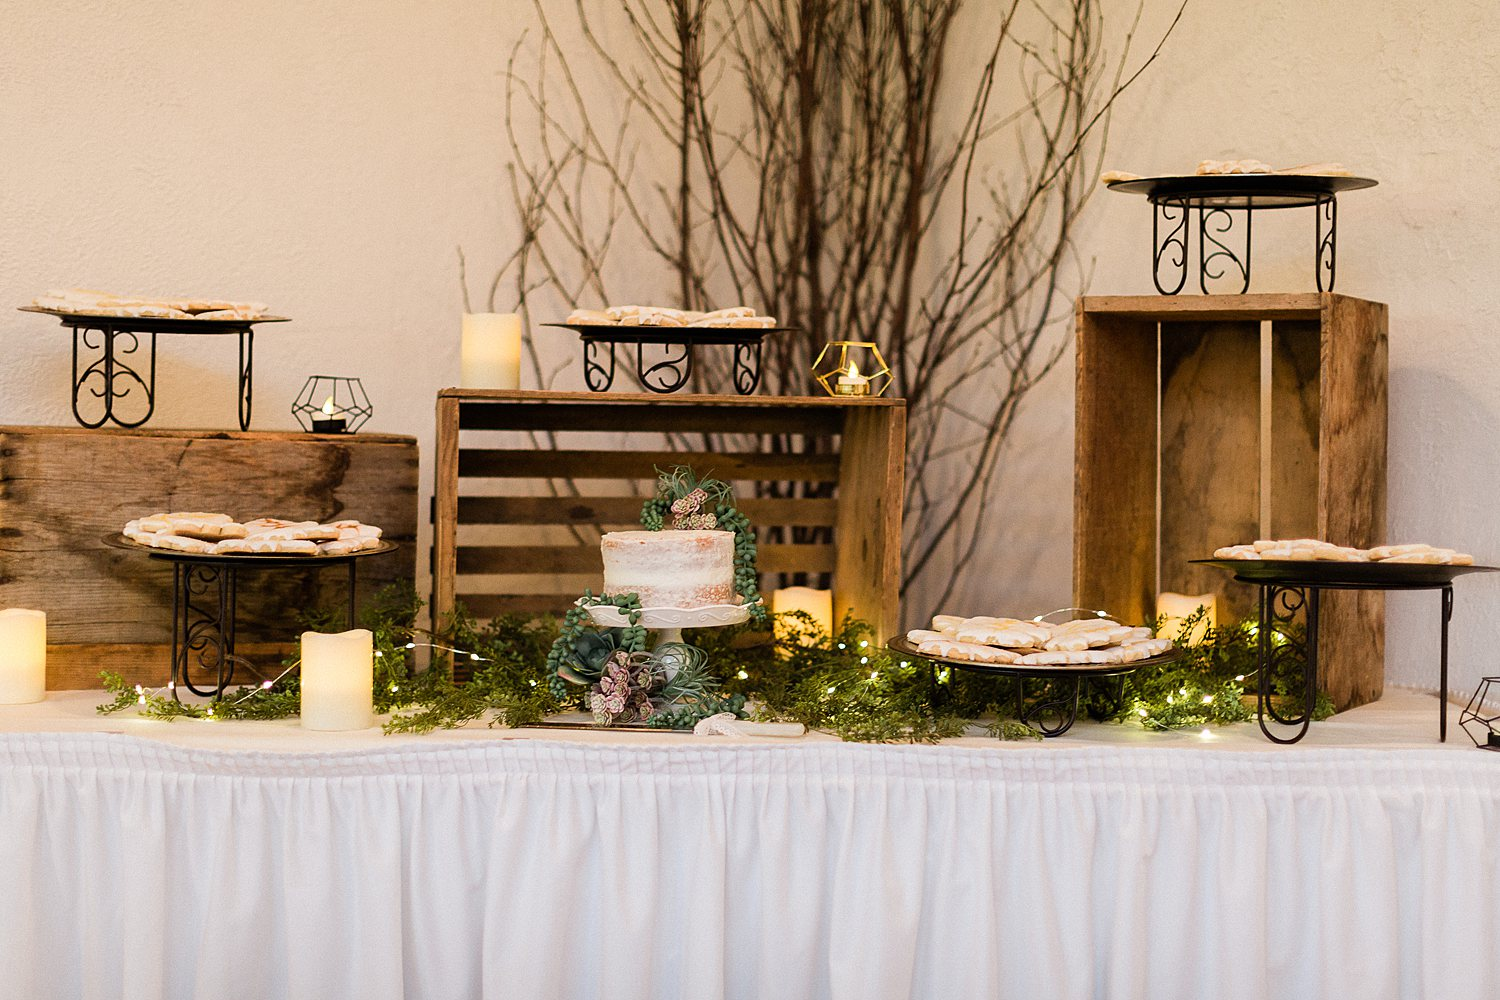 North_Central_Wisconsin_Event_Wedding_Venues_Fall_Weddings_The_Bailiwick_Venue_James-Stokes-Photography061.jpg